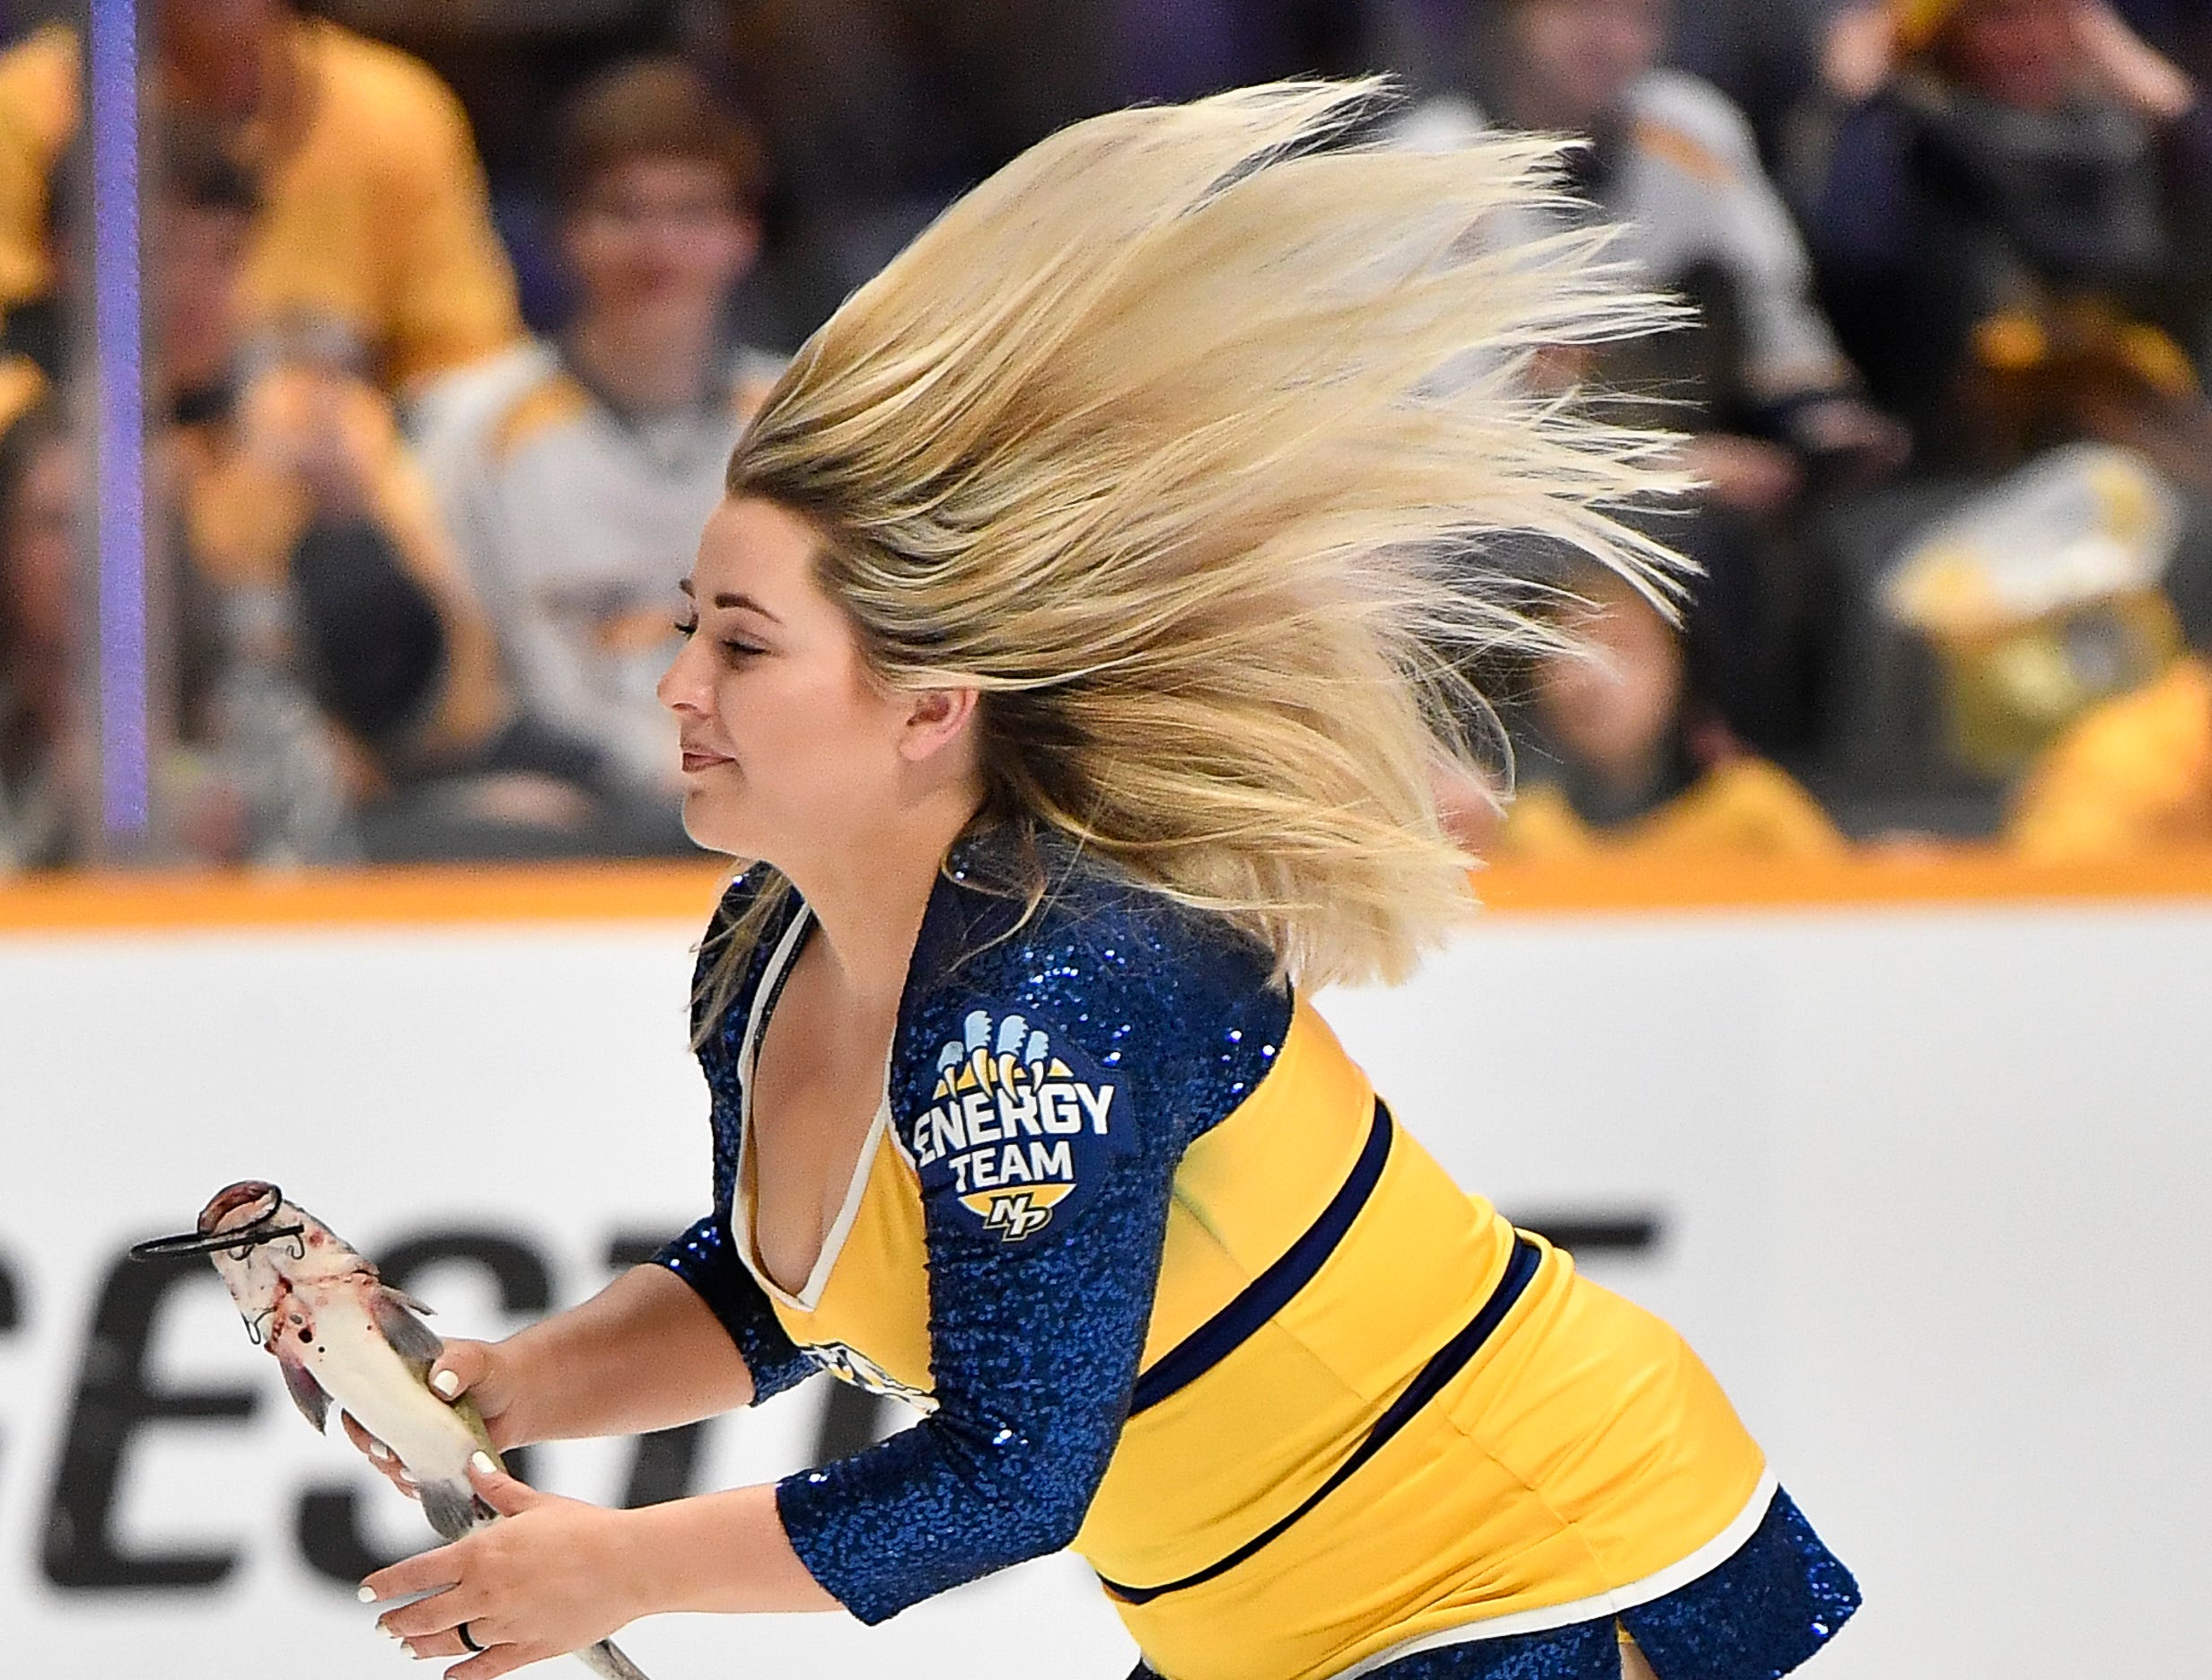 A member of the Predators Energy Team picks up a catfish form the ice before their game against the Blues at Bridgestone Arena Sunday Feb. 10, 2019 in Nashville, Tenn.